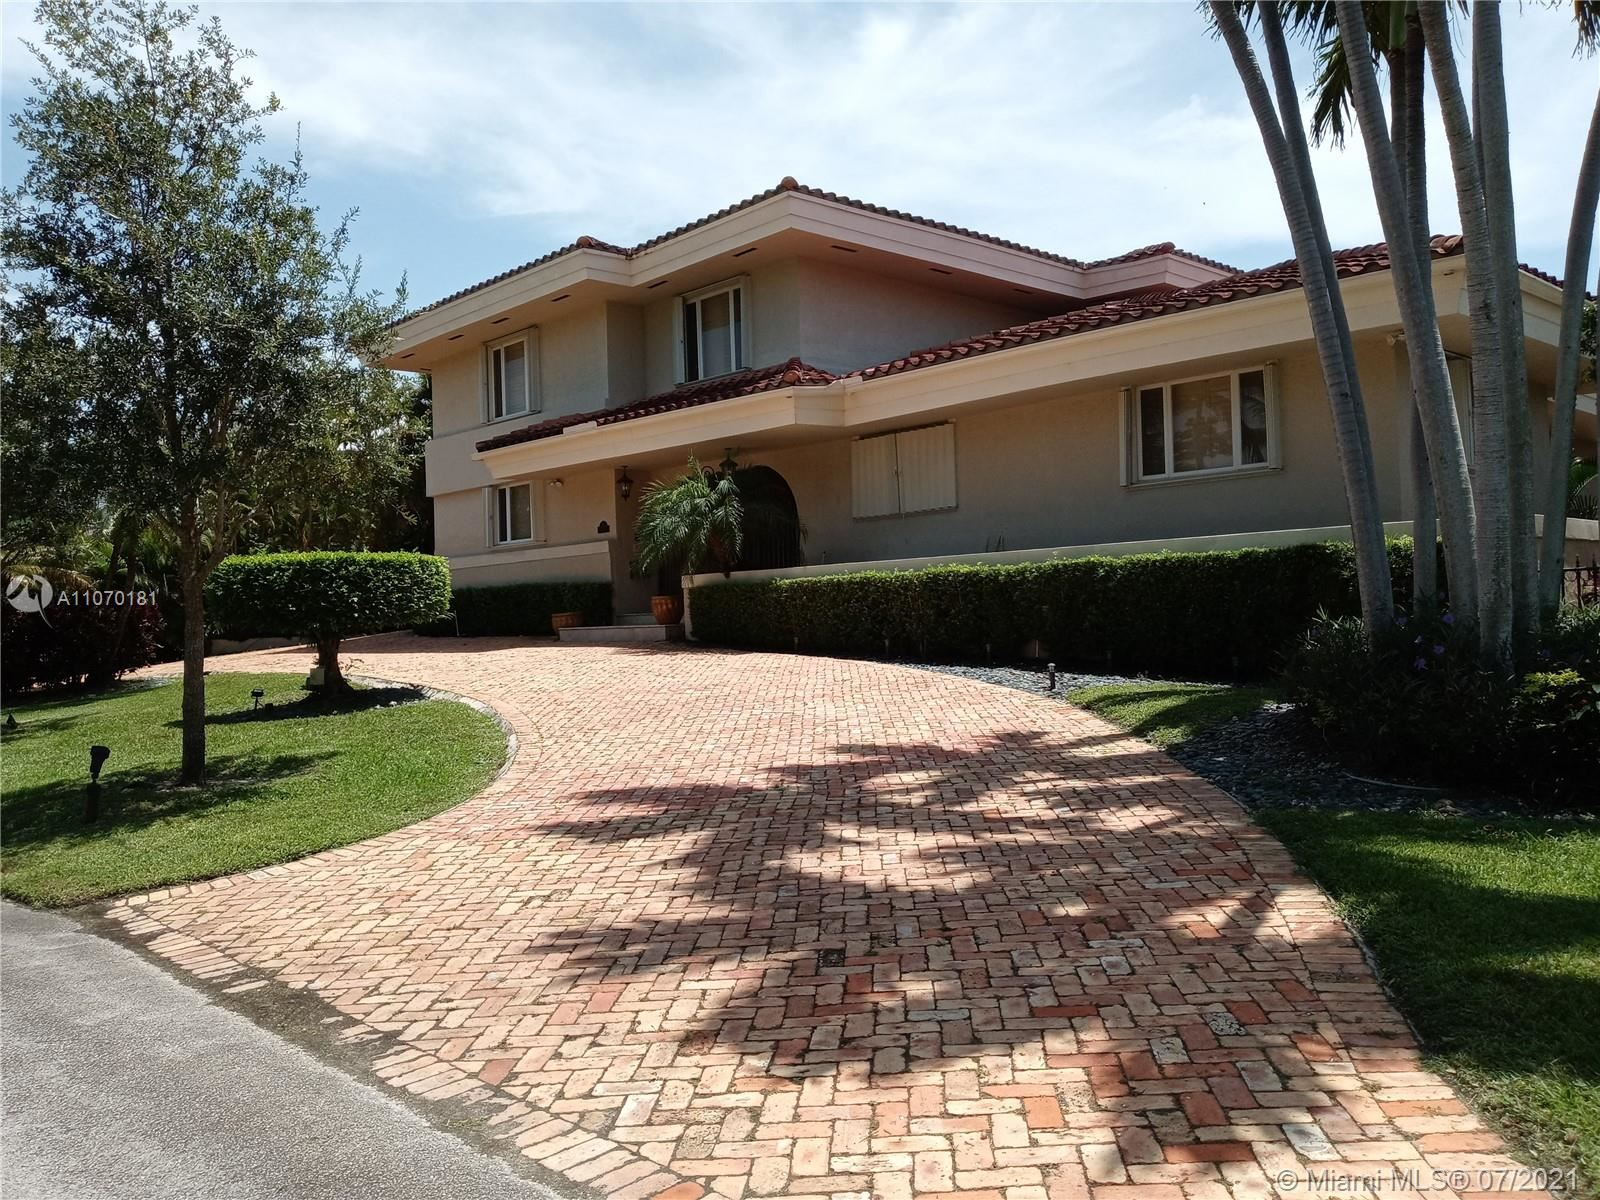 Photo of 13061 Lerida St, Coral Gables, FL 33156 (MLS # A11070181)